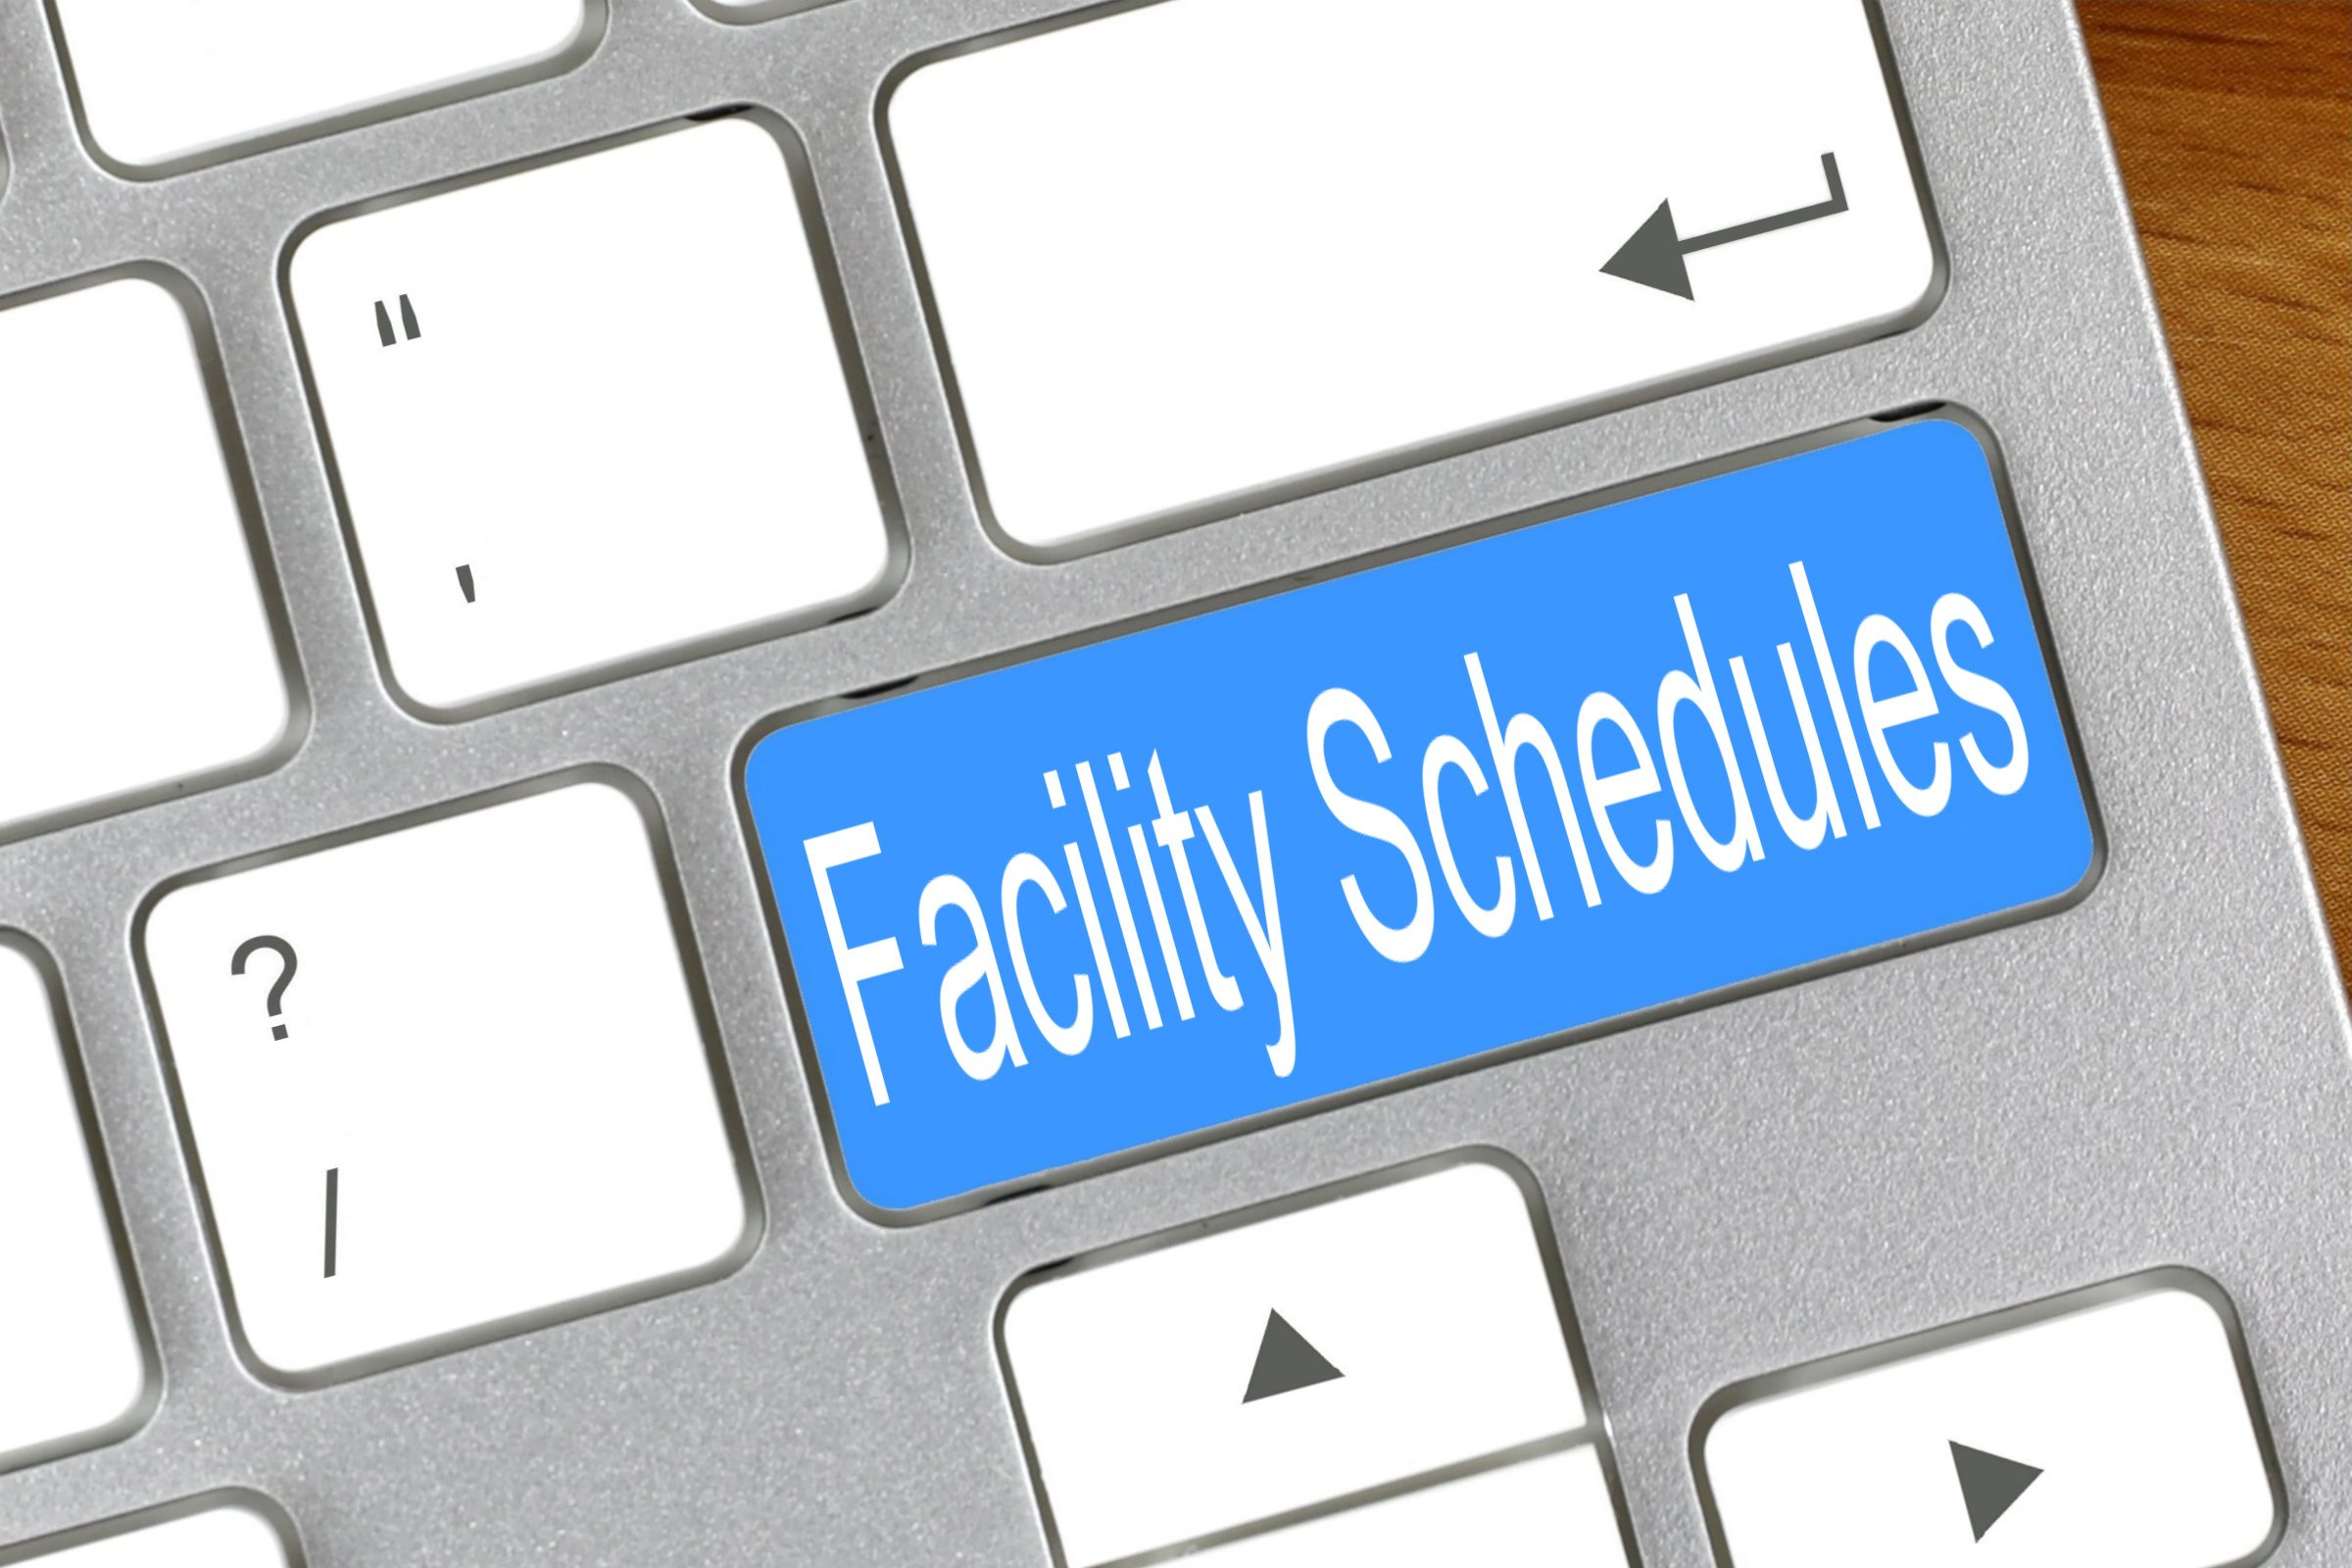 Facility Schedules